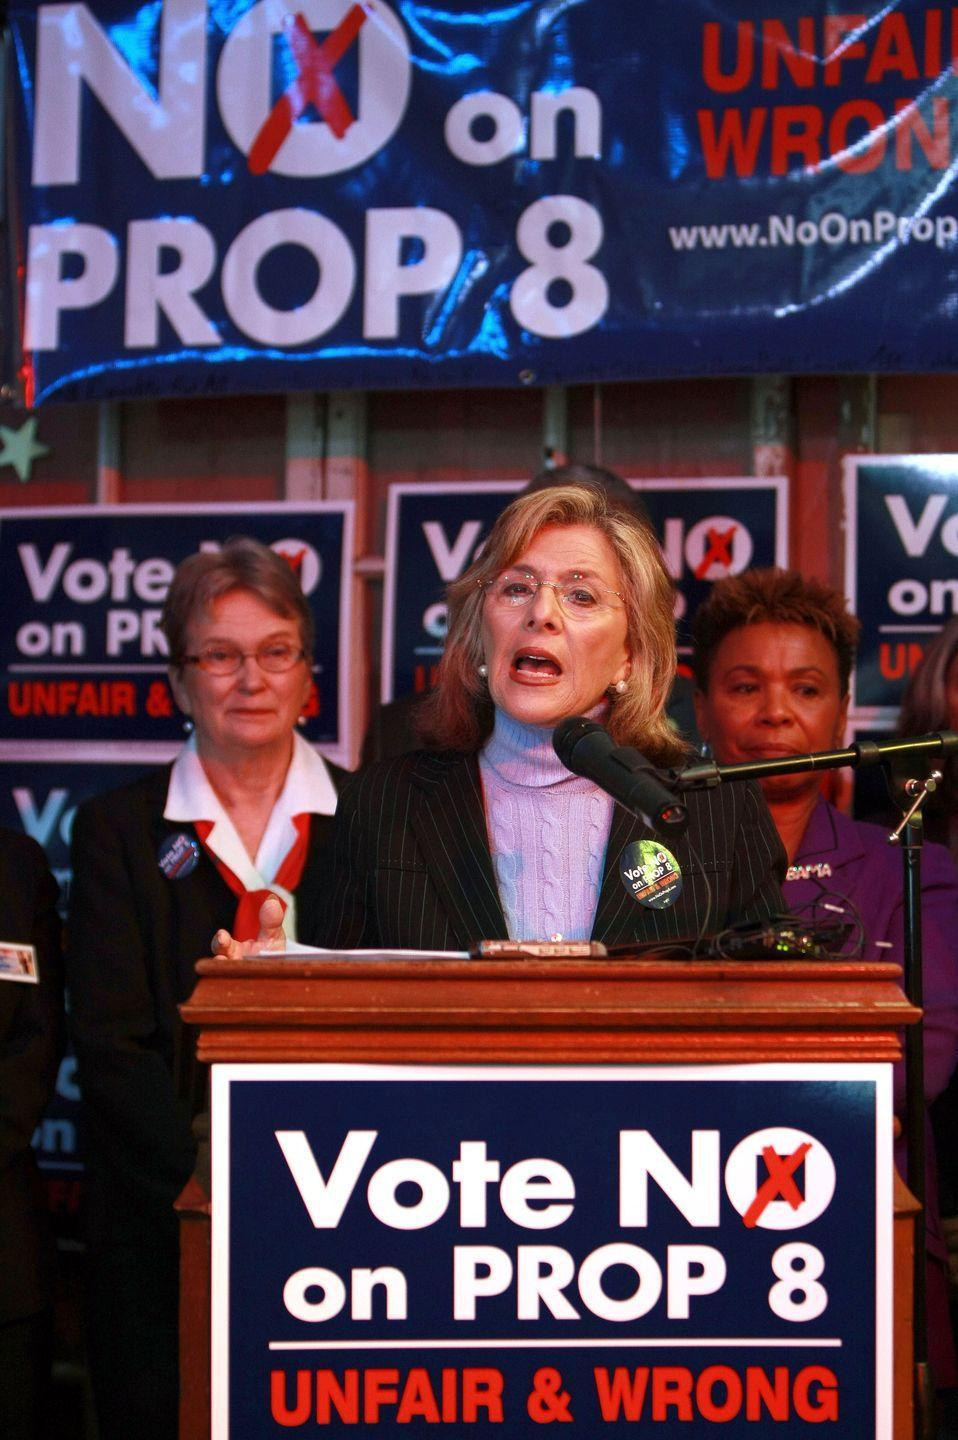 """<p>Here, Senator Barbara Boxer speaks to crowds during a """"No on Prop 8"""" rally in October 2008 in Oakland, California. The senator voiced her support for defeating Prop 8, which would change the California state constitution to legally recognize only marriages between men and women. </p><p>Only six months after marriage equality became law in the state via a decision from the Supreme Court, voters in California approved Proposition 8 at the polls, which banned same-sex couples from marrying. </p>"""